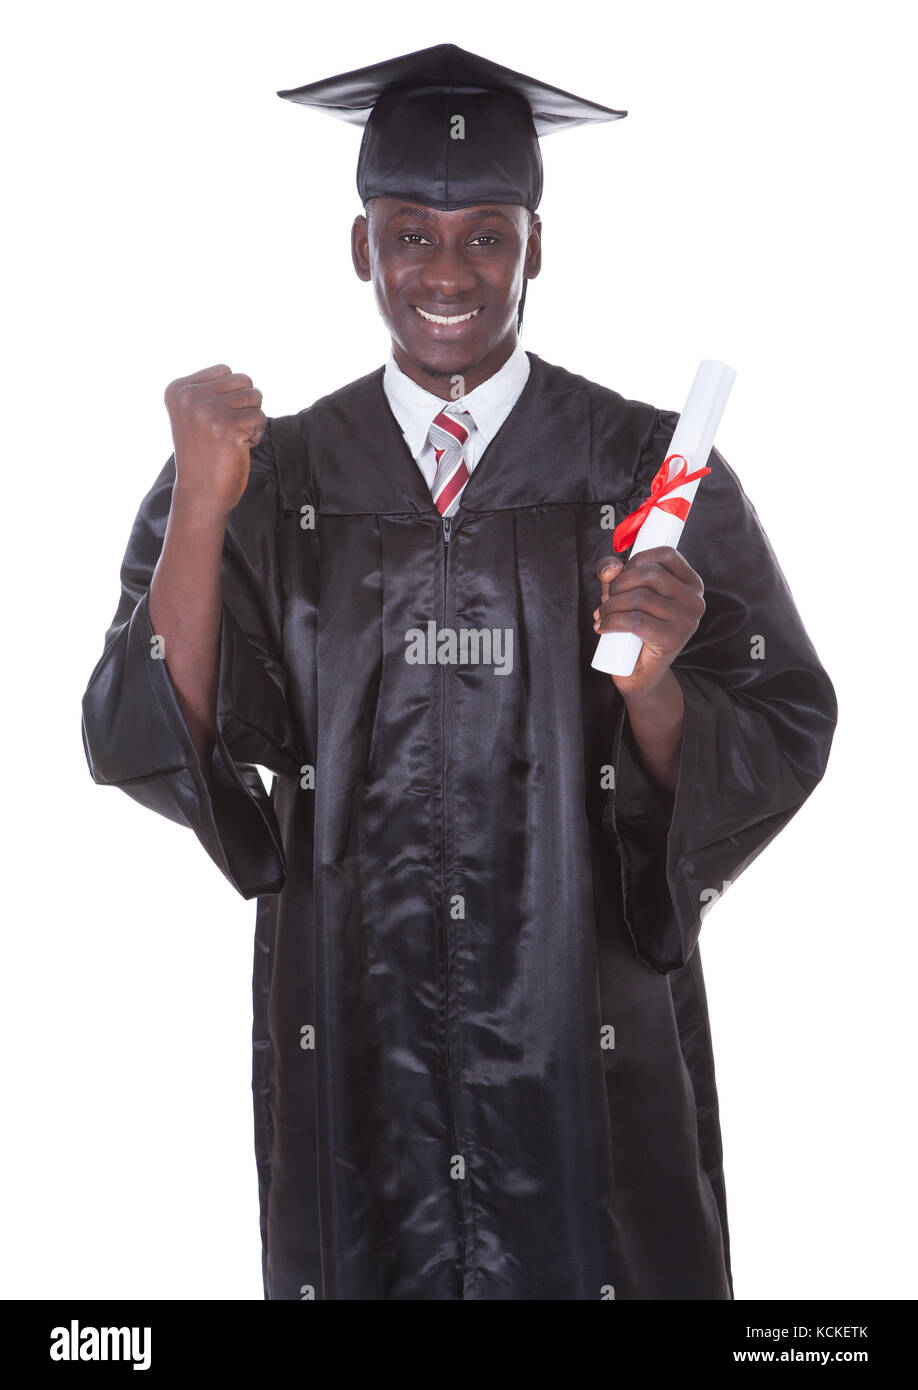 Portrait Of Graduation Man With Diploma Over White Background - Stock Image